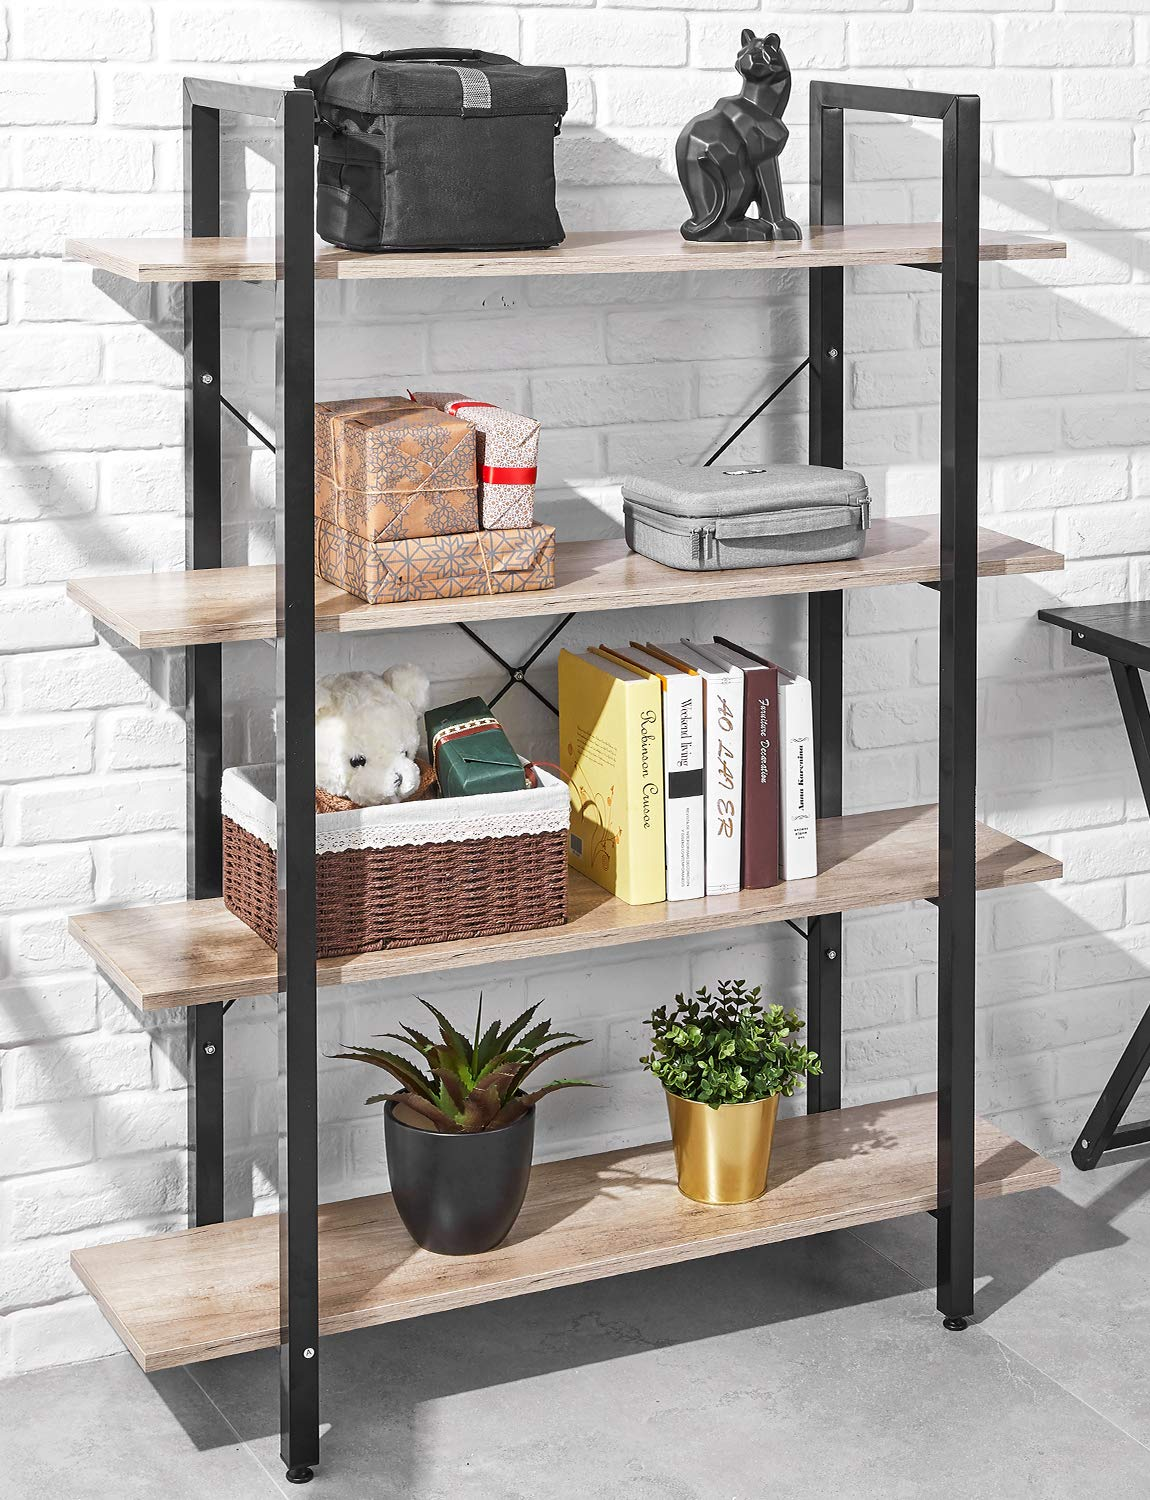 ORAF Bookshelf 4 Tier Industrial Style Bookcase, Solid 130lbs Load Capacity per Shelf Sturdy Bookshelves with Steel Frame, Wide Storage Organizer 41Wx12Dx55H inches Home Office Shelf, Wood-Grain